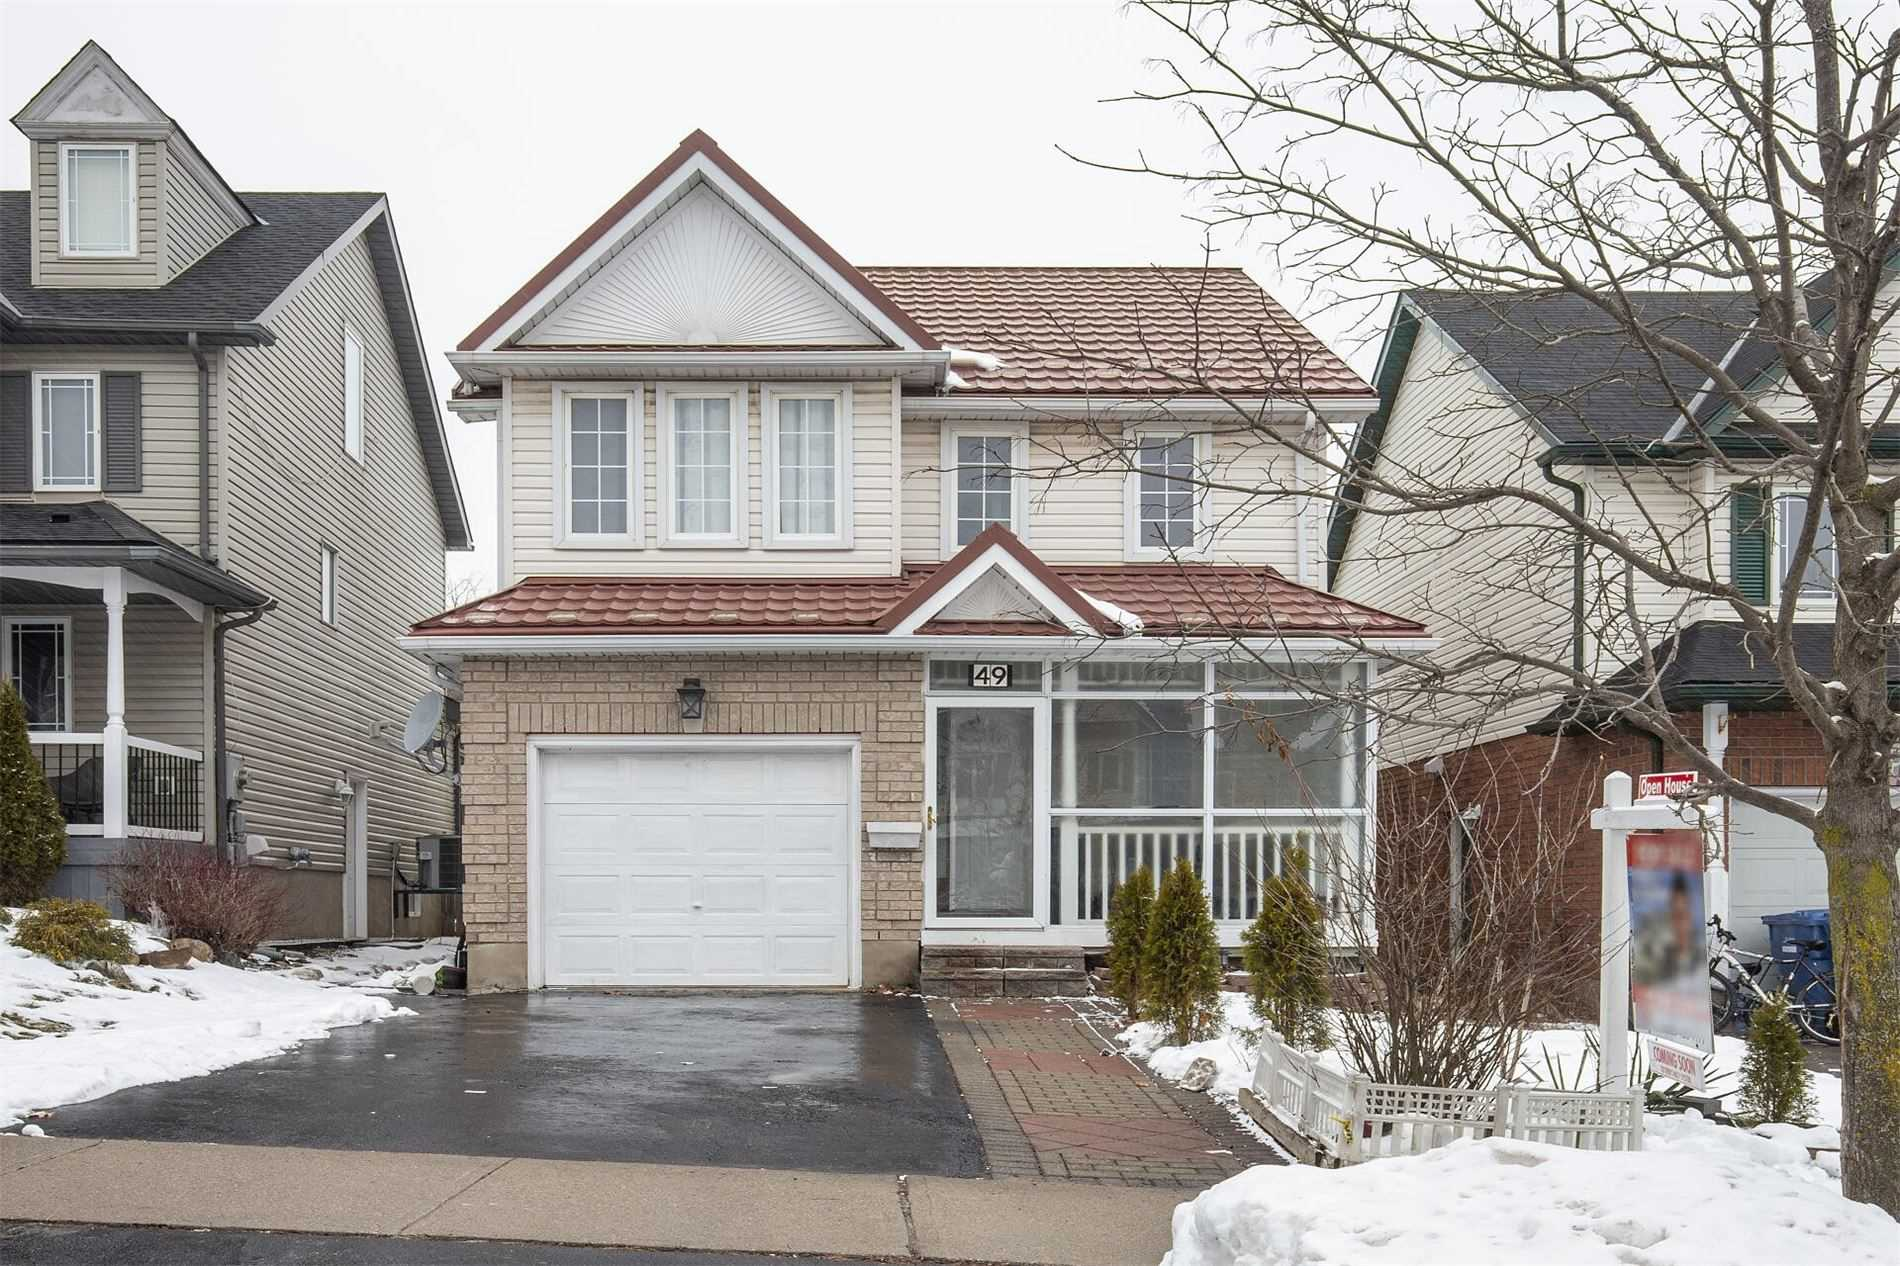 pictures of house for sale MLS: X4684324 located at 49 Carrington Pl, Guelph N1G5C3